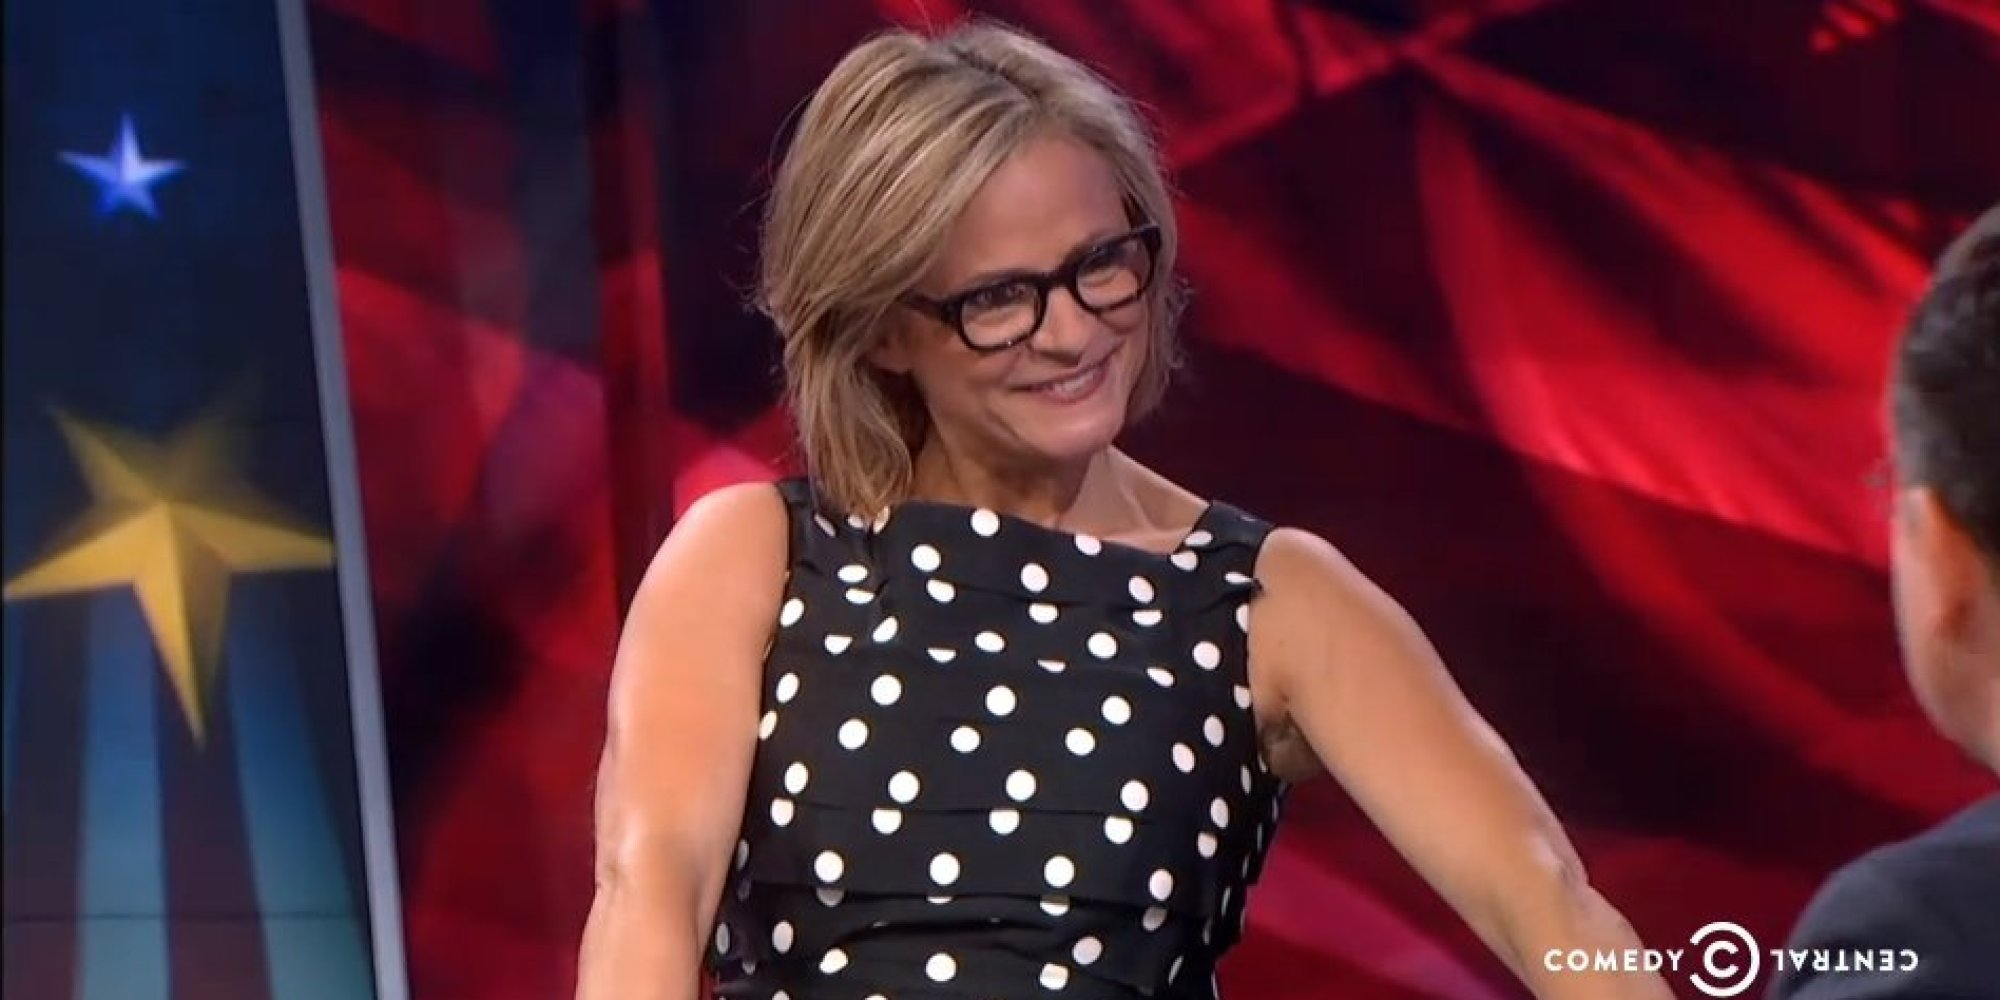 Amy Sedaris Surprises Stephen Colbert With An Even More